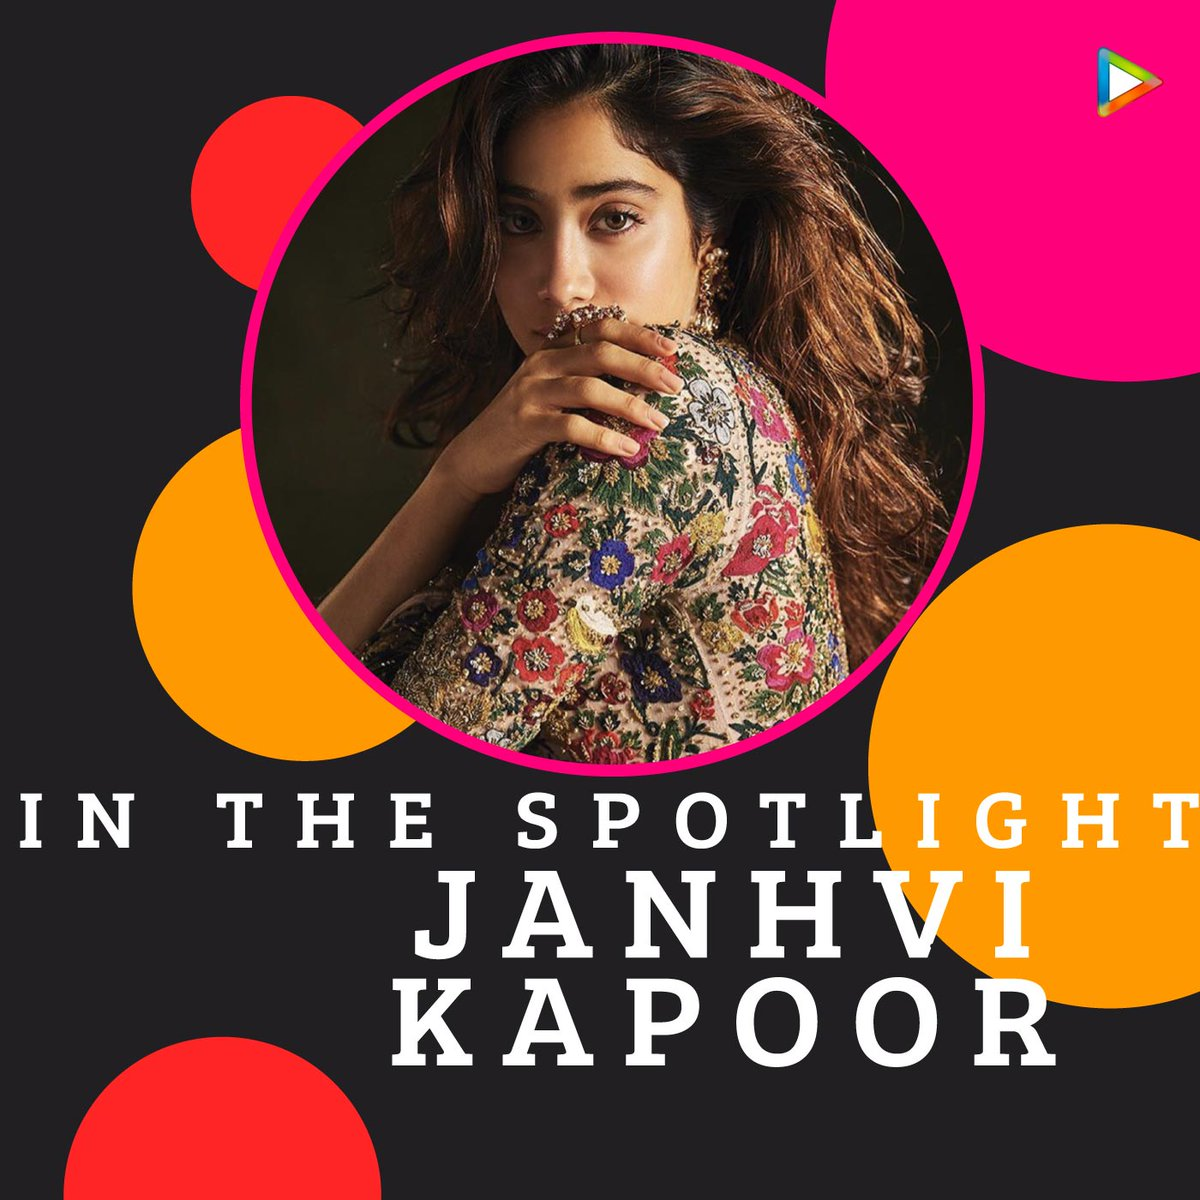 To our rising star of our Film industry, #JanhviKapoor, may you continue to shine and sizzle with every character you perform and continue to WOW everyone with your style.   We are eagerly waiting to see you in #Roohi  👉 https://t.co/GMxRmjpCU5  #HappyBirthdayJanhviKapoor https://t.co/6k9nMLV75V